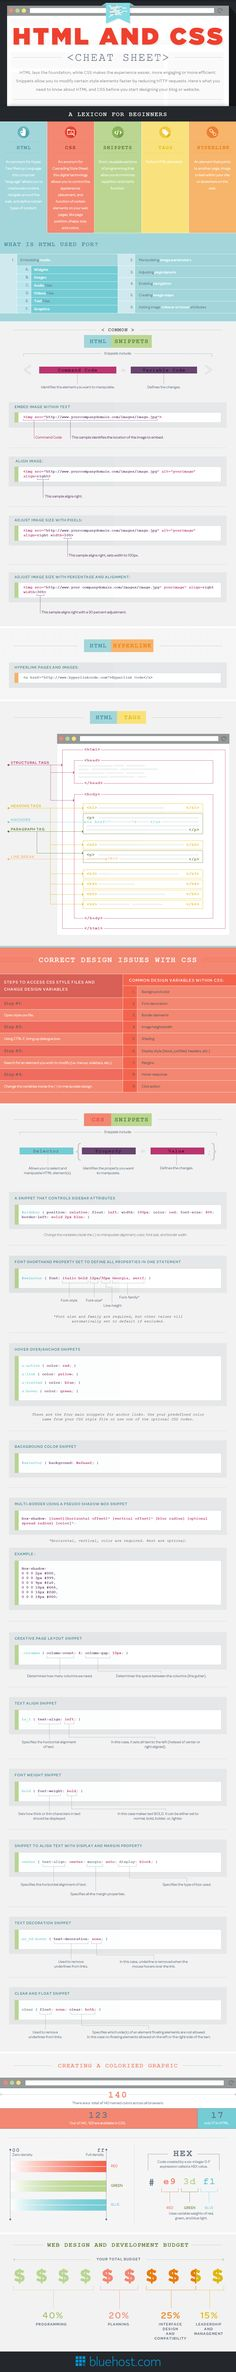 Coding your website can be a minefield. Here's a #html and #css cheat sheet #infographic that can help you get a good basic knowledge of how it works.